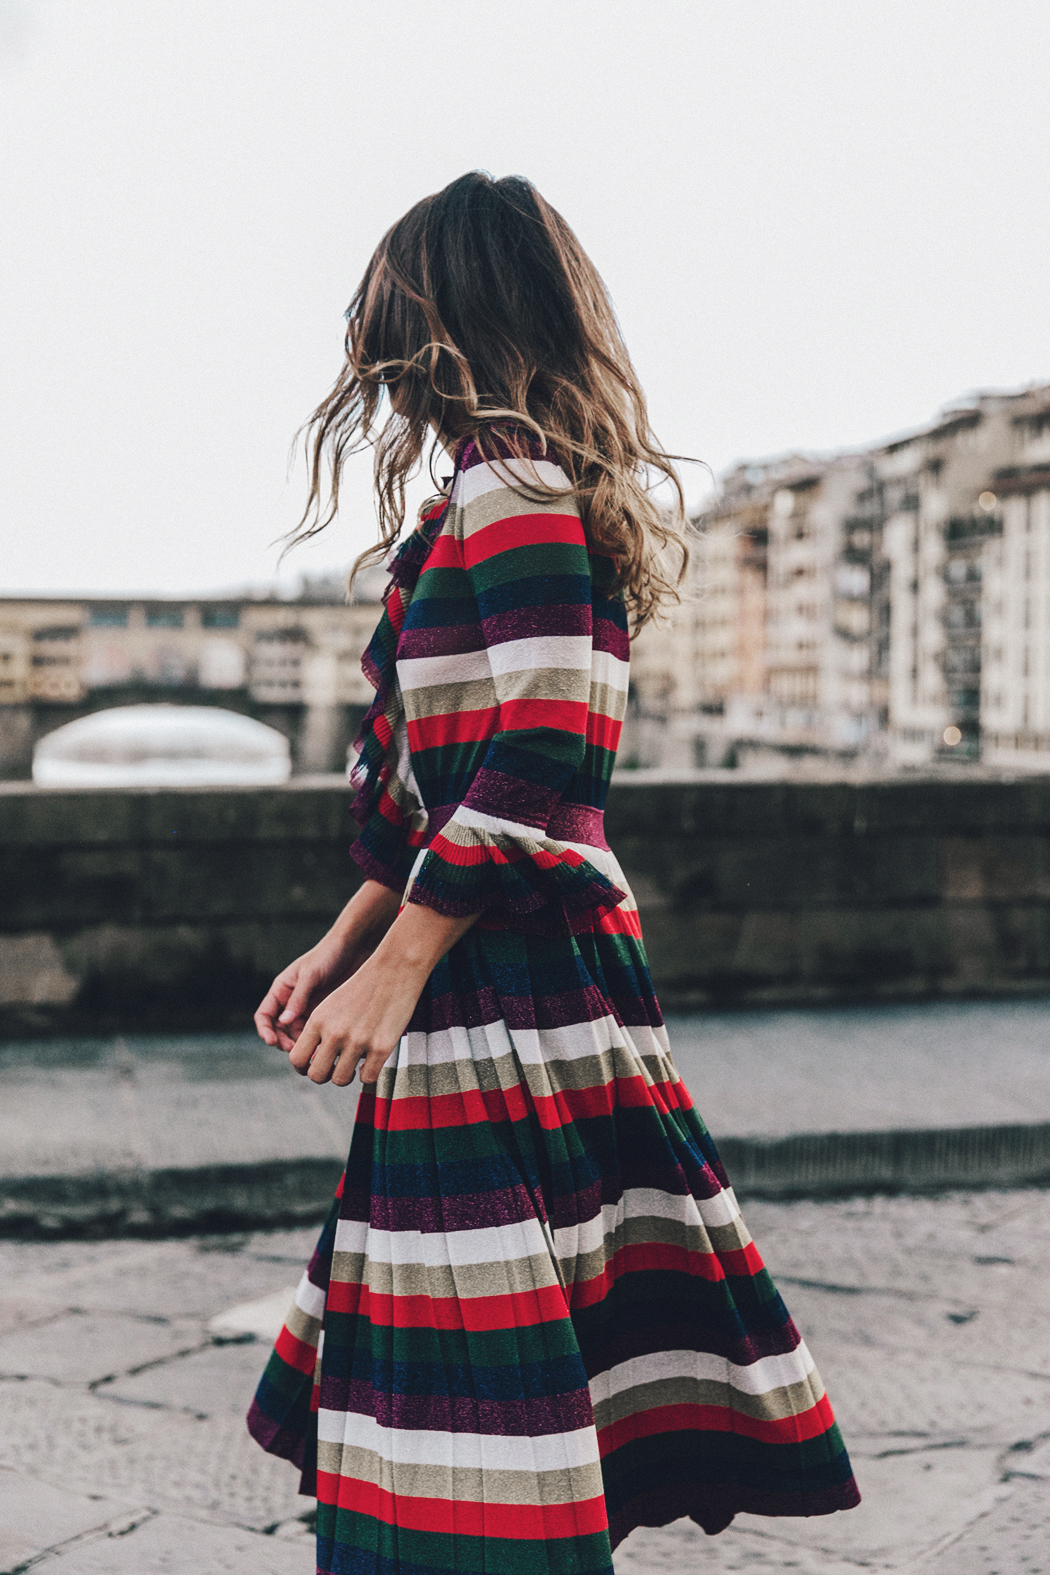 Firenze4Ever-Luisa_VIa_Roma-Gucci_Striped_Dress-Gucci_Gold_Sandals-Outfit-Florence-Street_Style-35